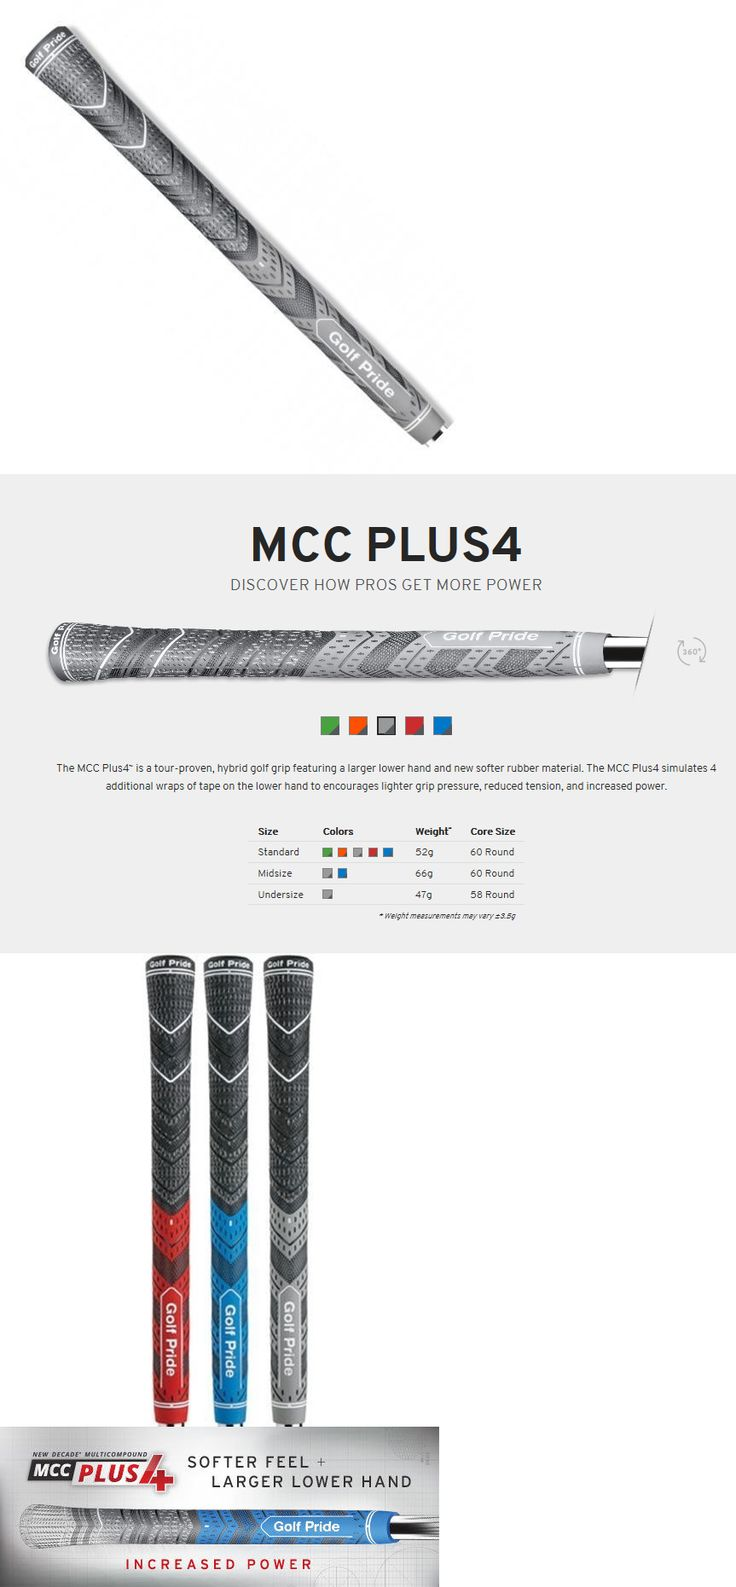 Golf Club Grips 47324: (8) New Decade Multicompound Golf Pride Mcc Plus4 +4 Golf Grips Standard -Grey- -> BUY IT NOW ONLY: $60.99 on eBay!